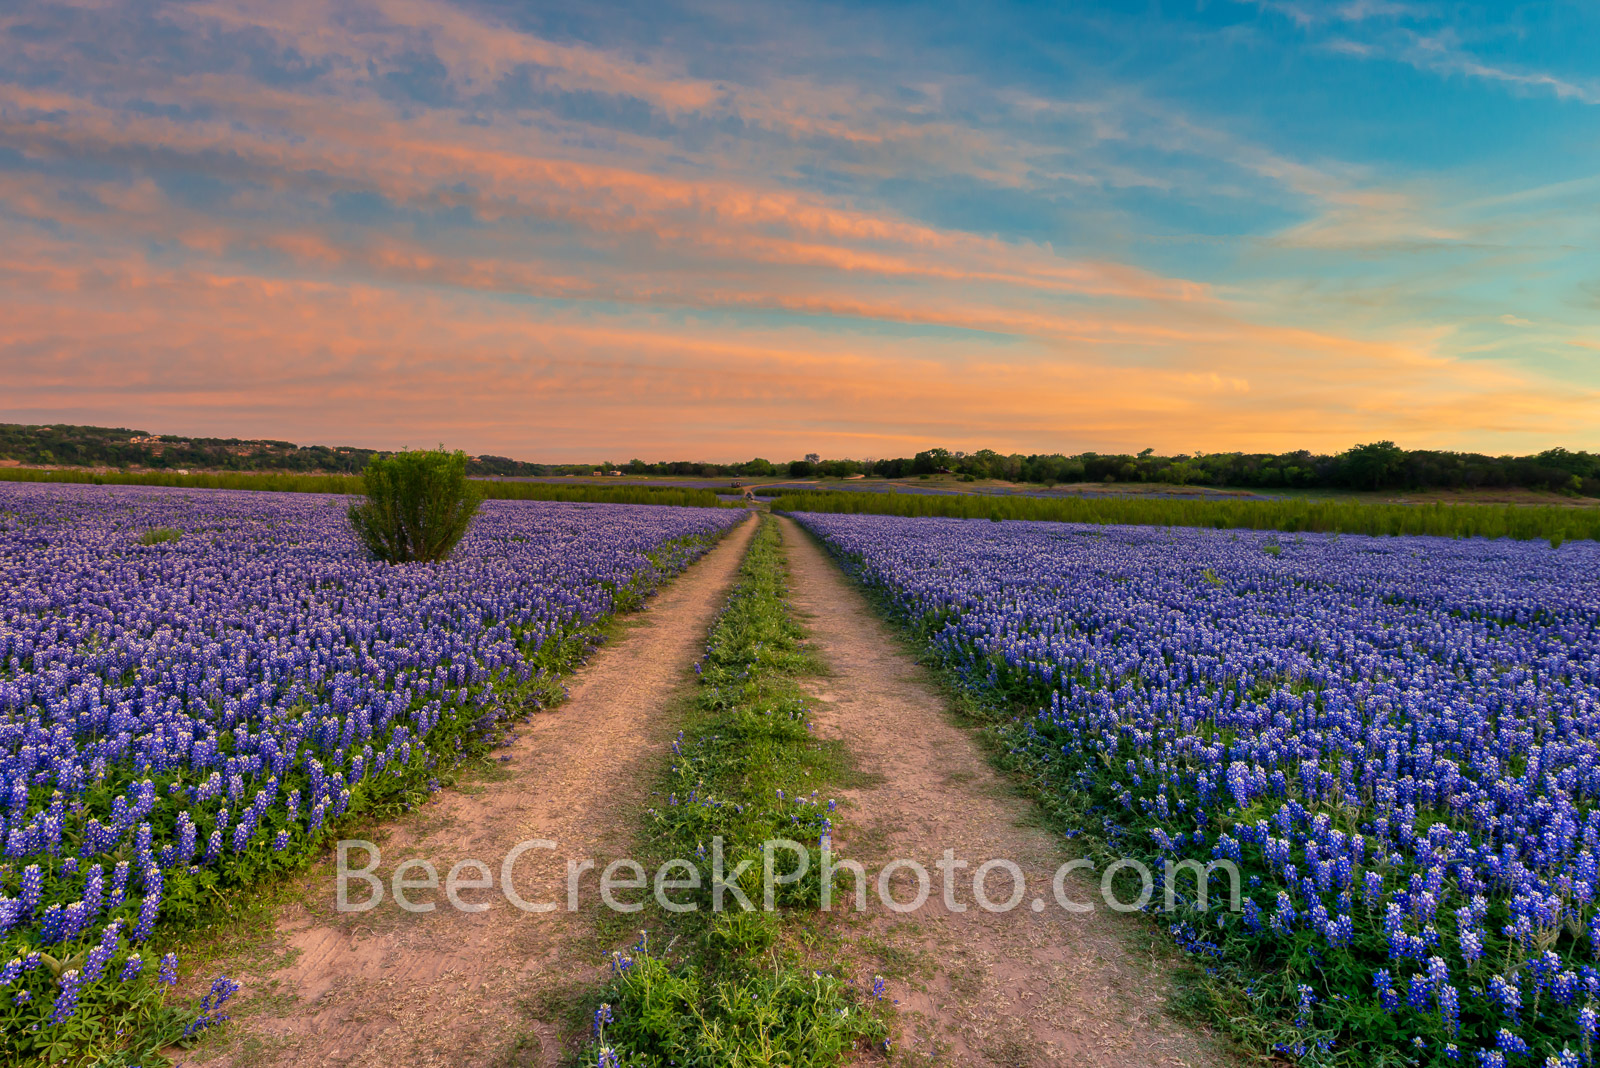 Bluebonnets, bluebonnet, blue bells, blue bonnets, sunset, colorful sky, Muleshoe Bend Park, river bluebonnets, Texas bluebonnets, bluebonnets in texas, field of bluebonnets, bluebonnets landscape,, photo